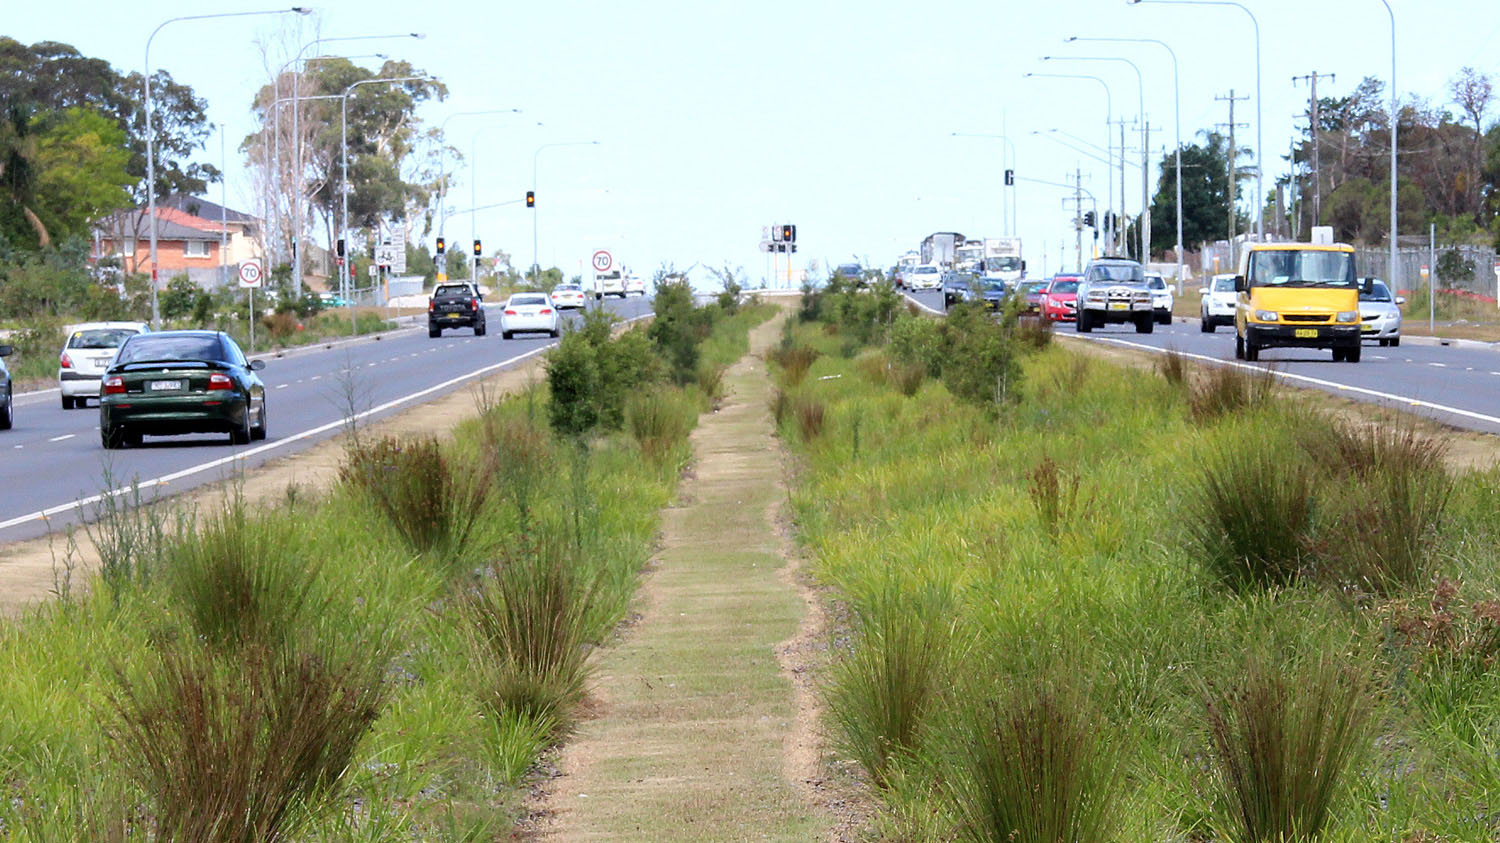 drainage-way-within-central-median.jpg